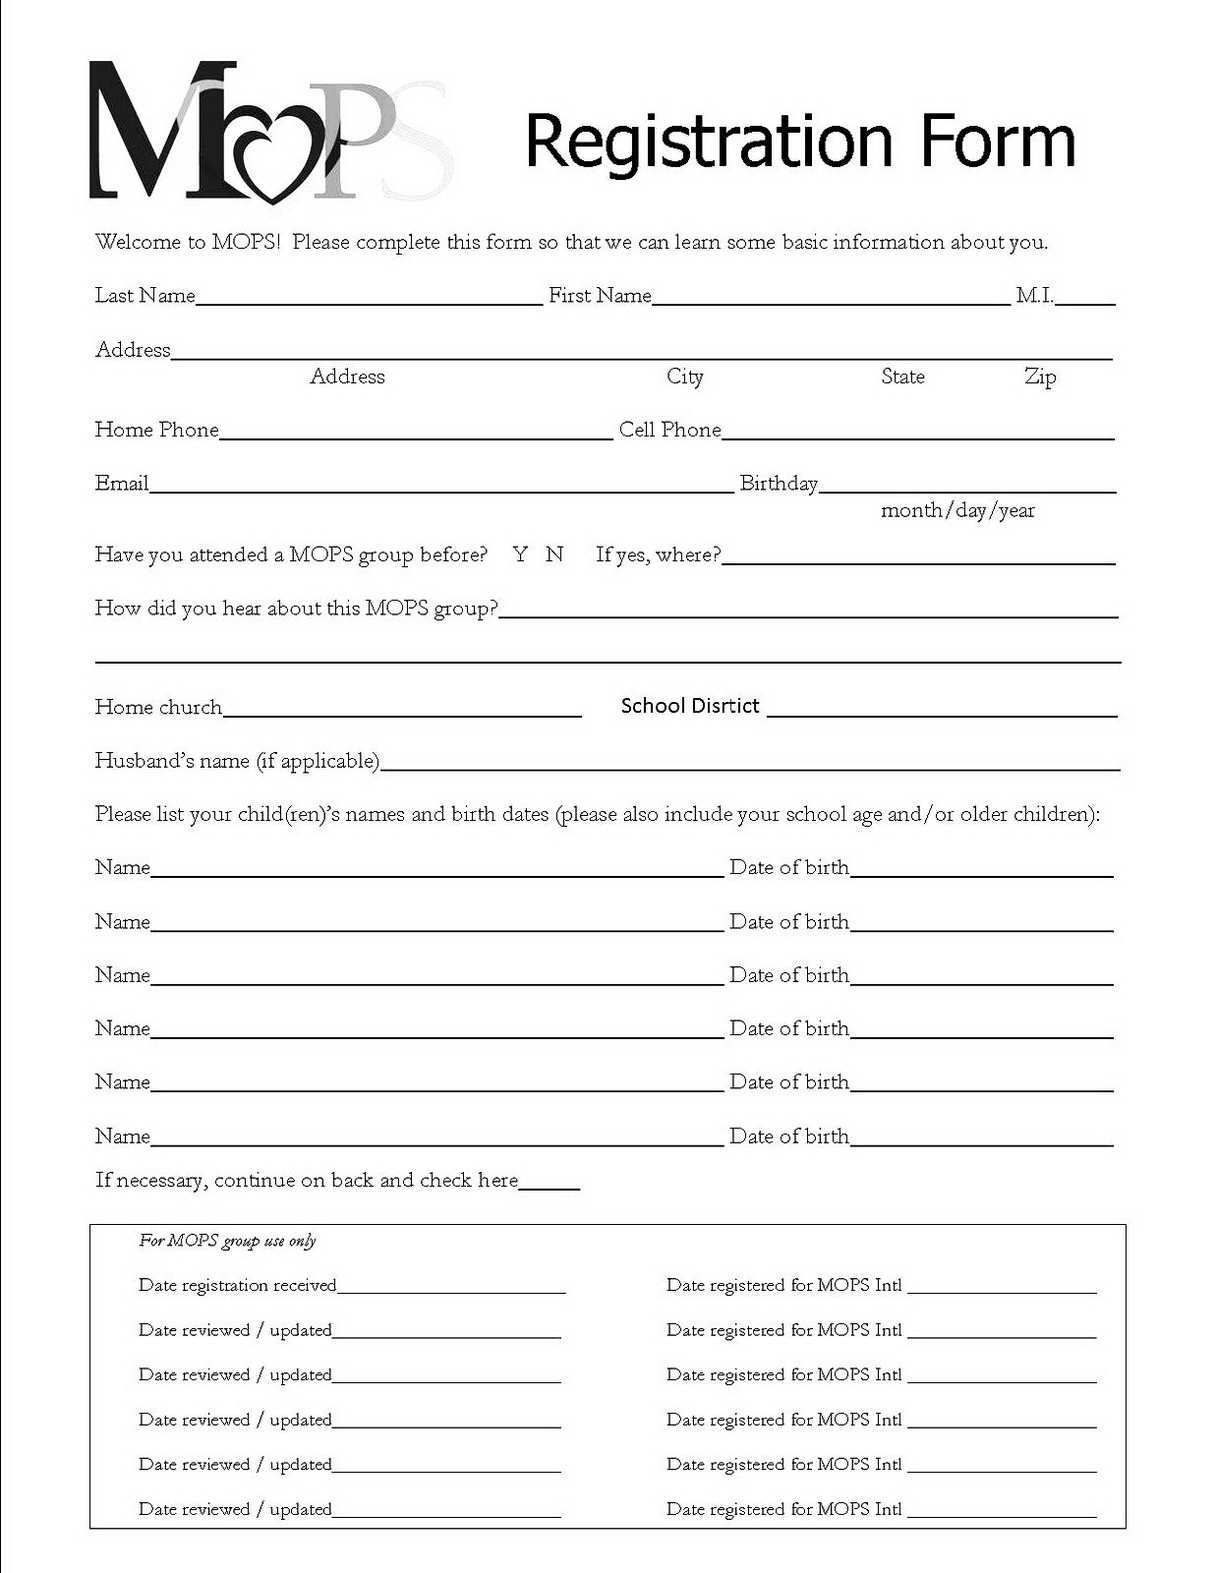 registration form templates free download   April.onthemarch.co